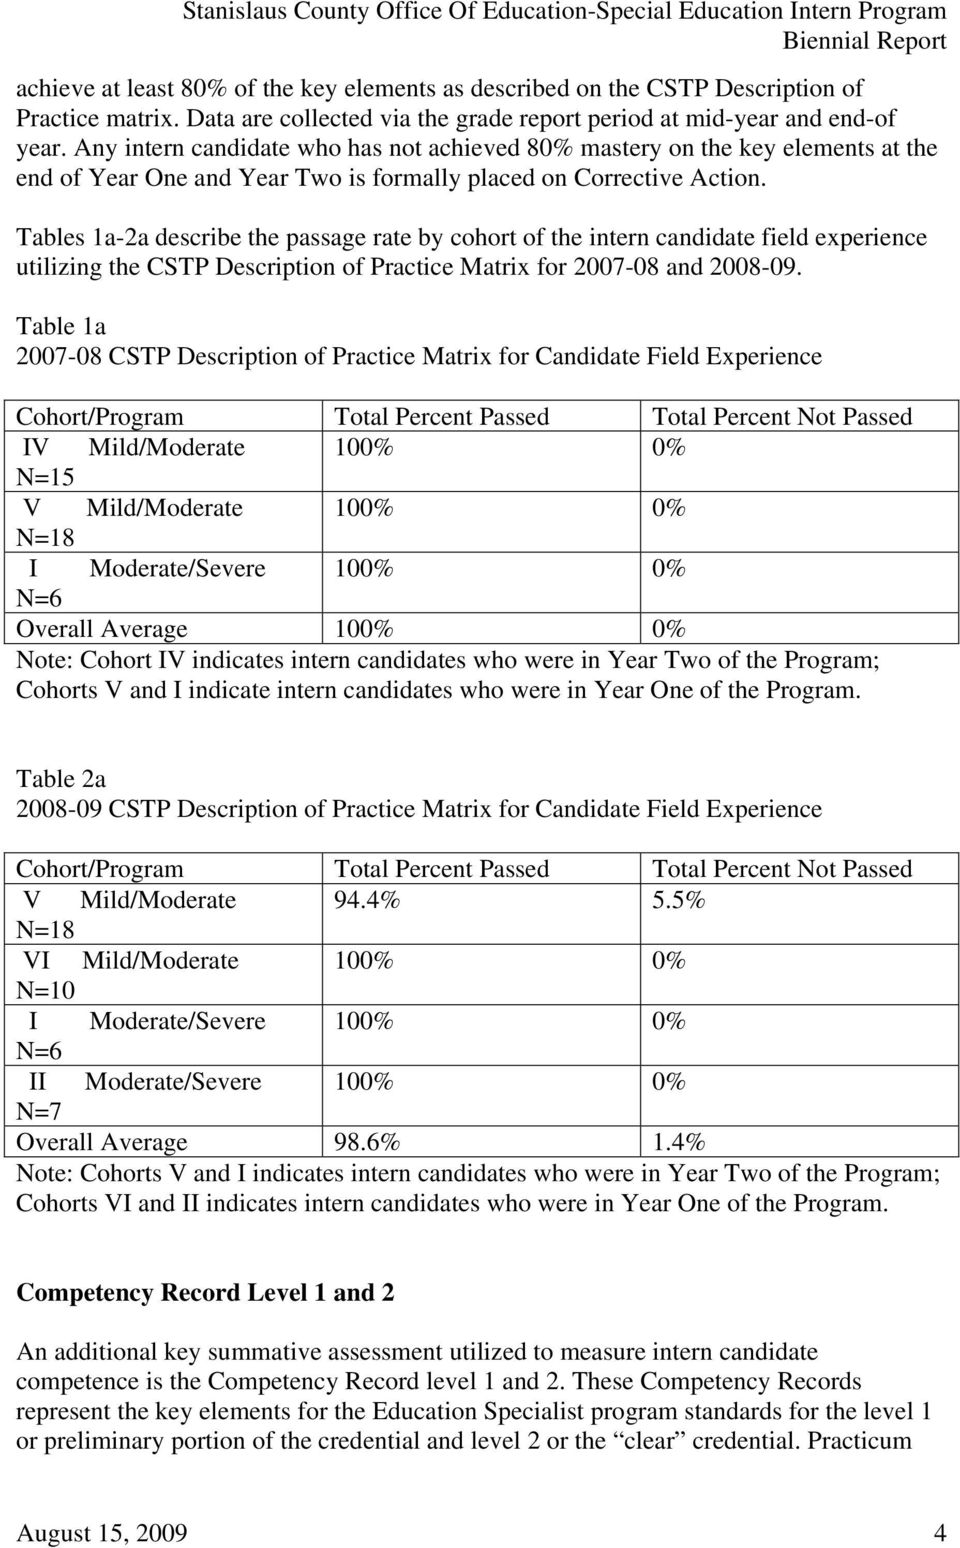 Tables 1a-2a describe the passage rate by cohort of the intern candidate field experience utilizing the CSTP Description of Practice Matrix for 2007-08 and 2008-09.